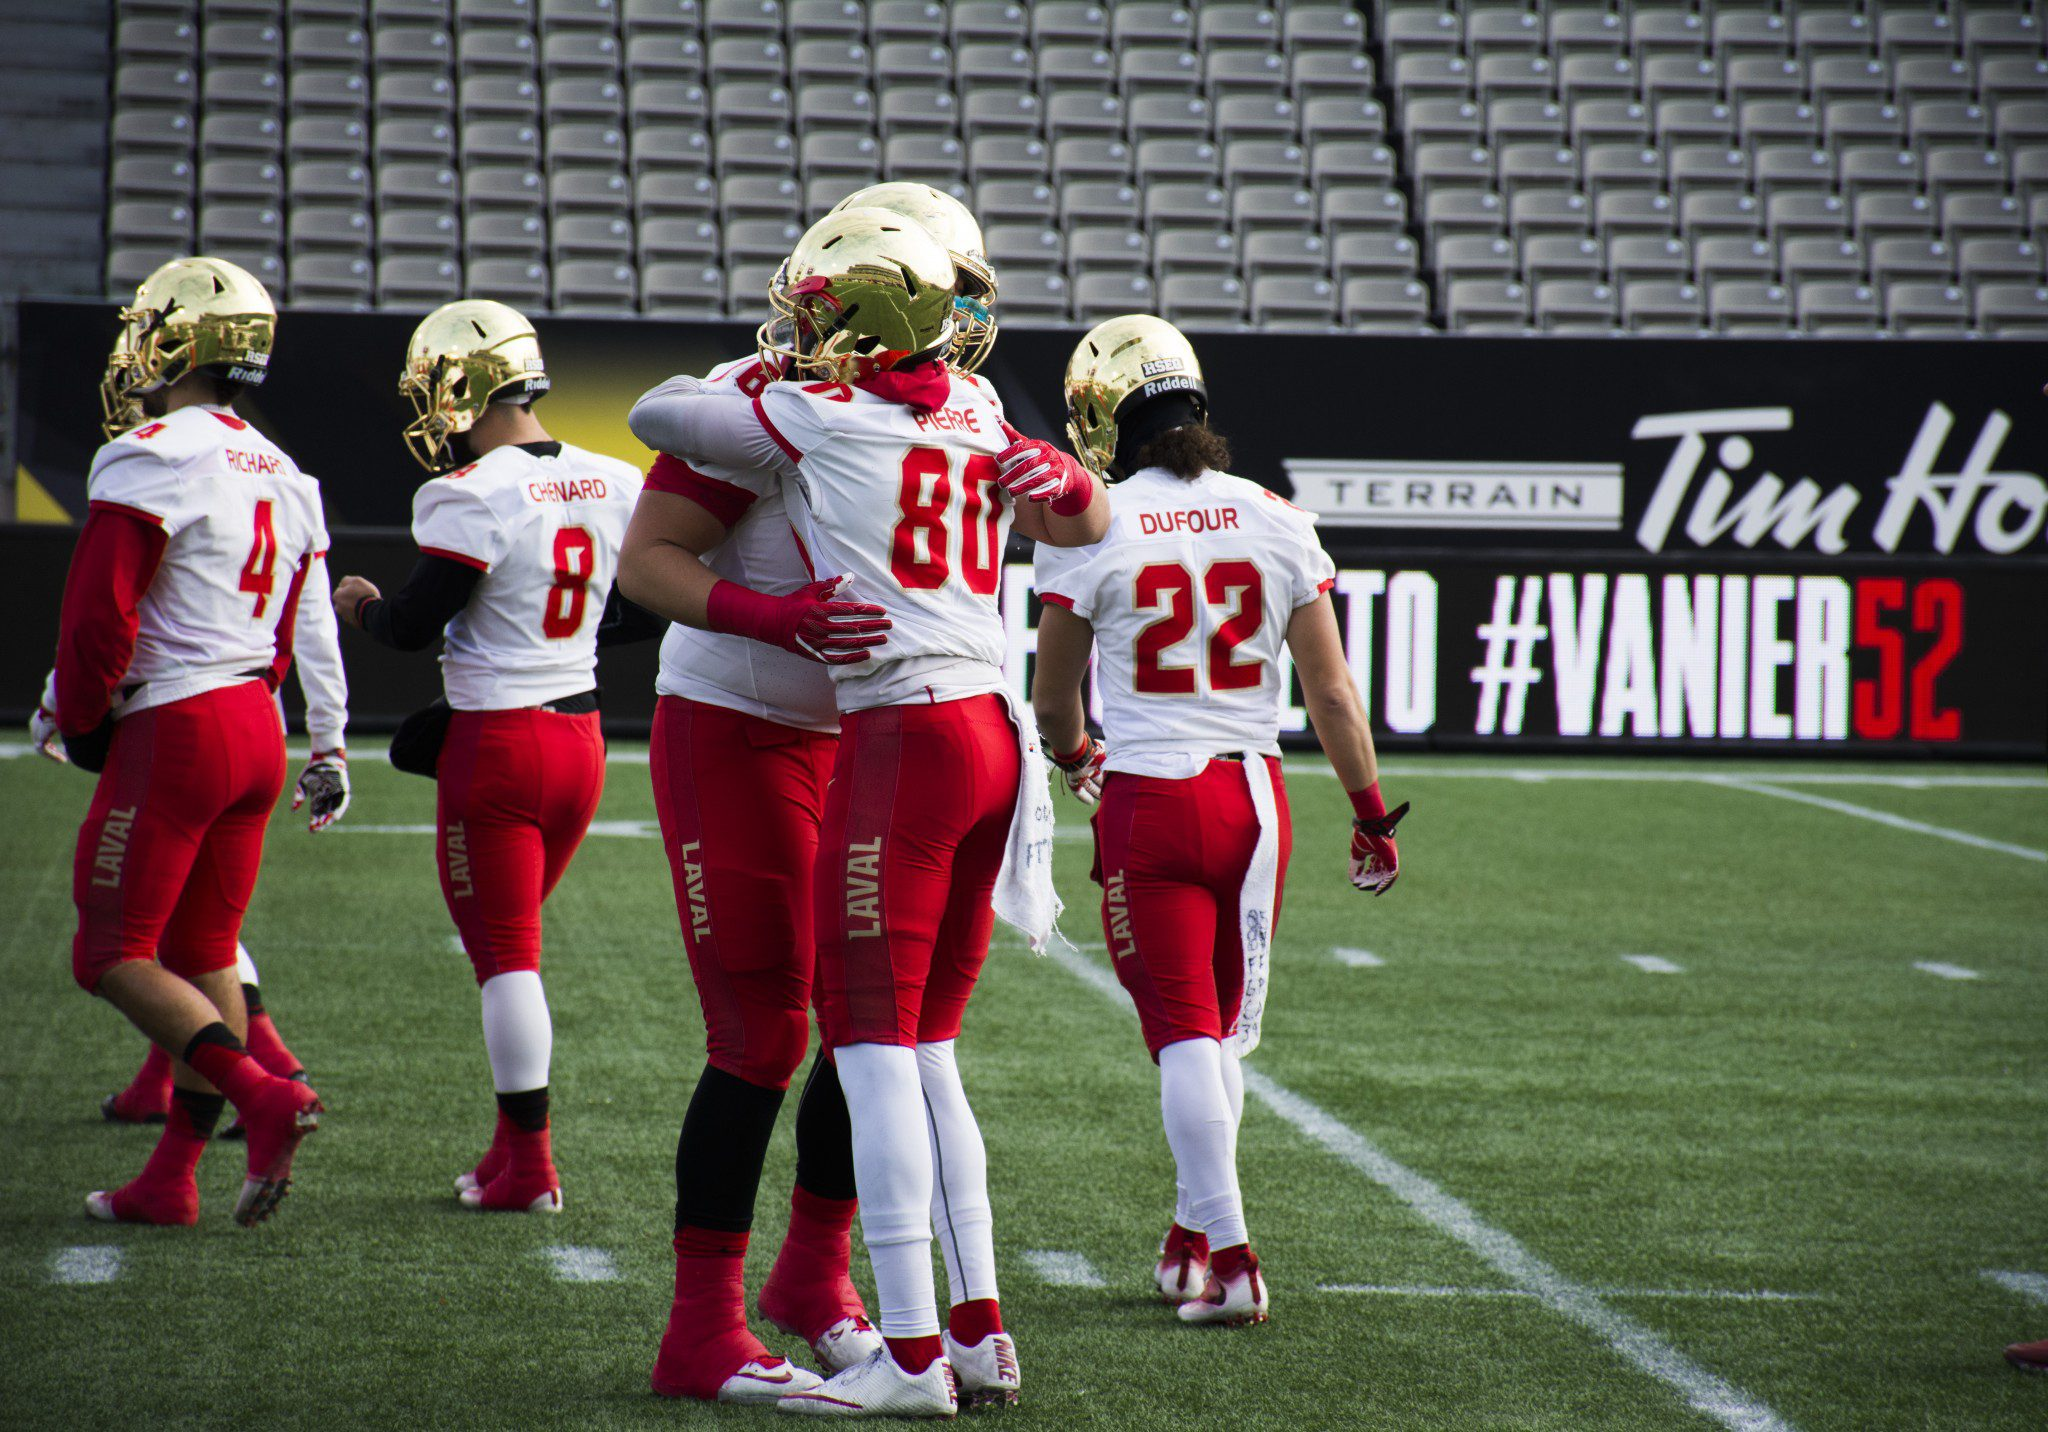 Laval players hugging